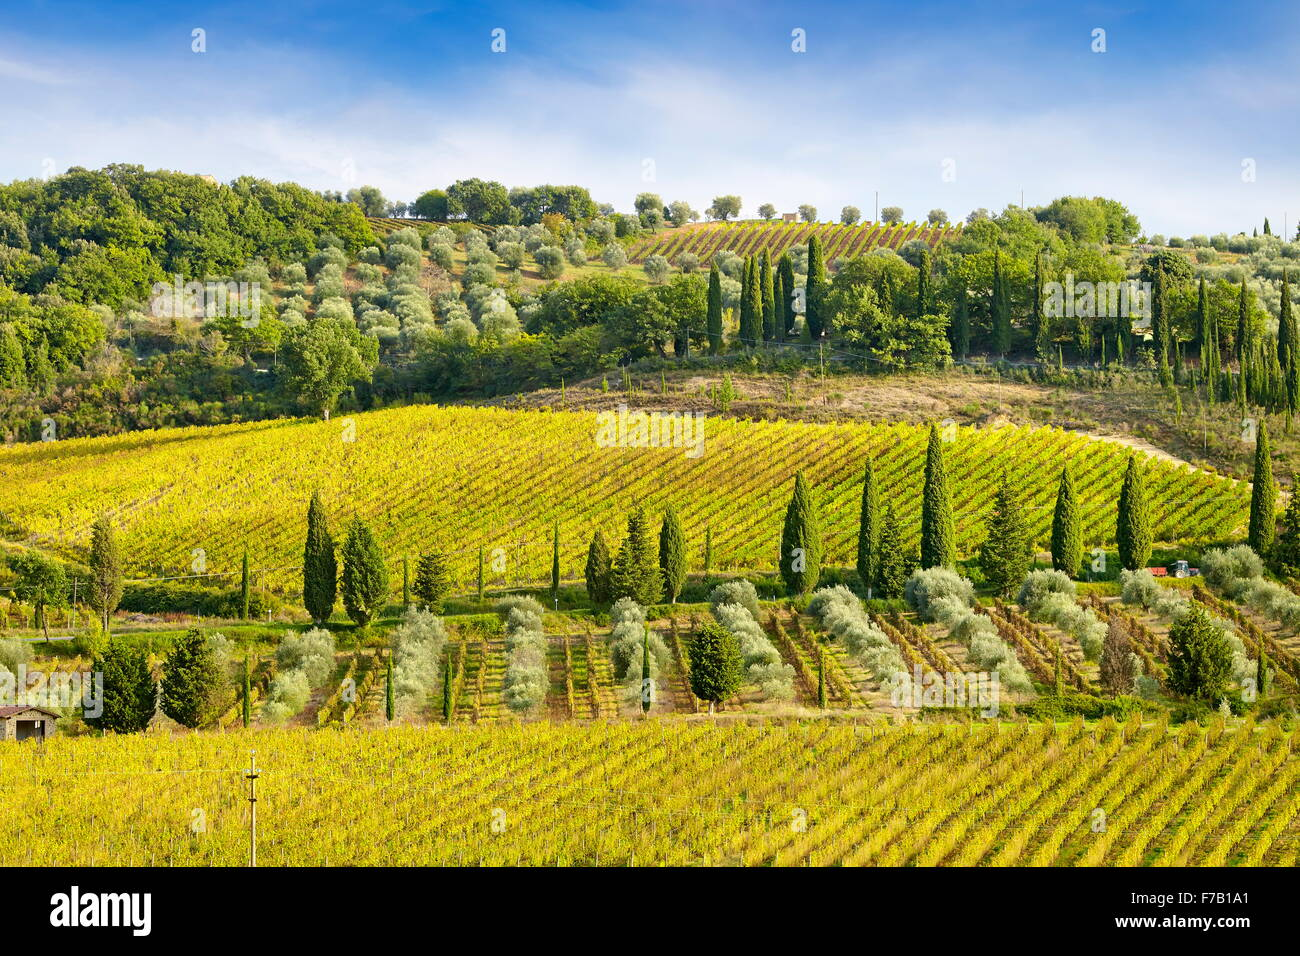 Wineyard, Tuscany Italy - Stock Image